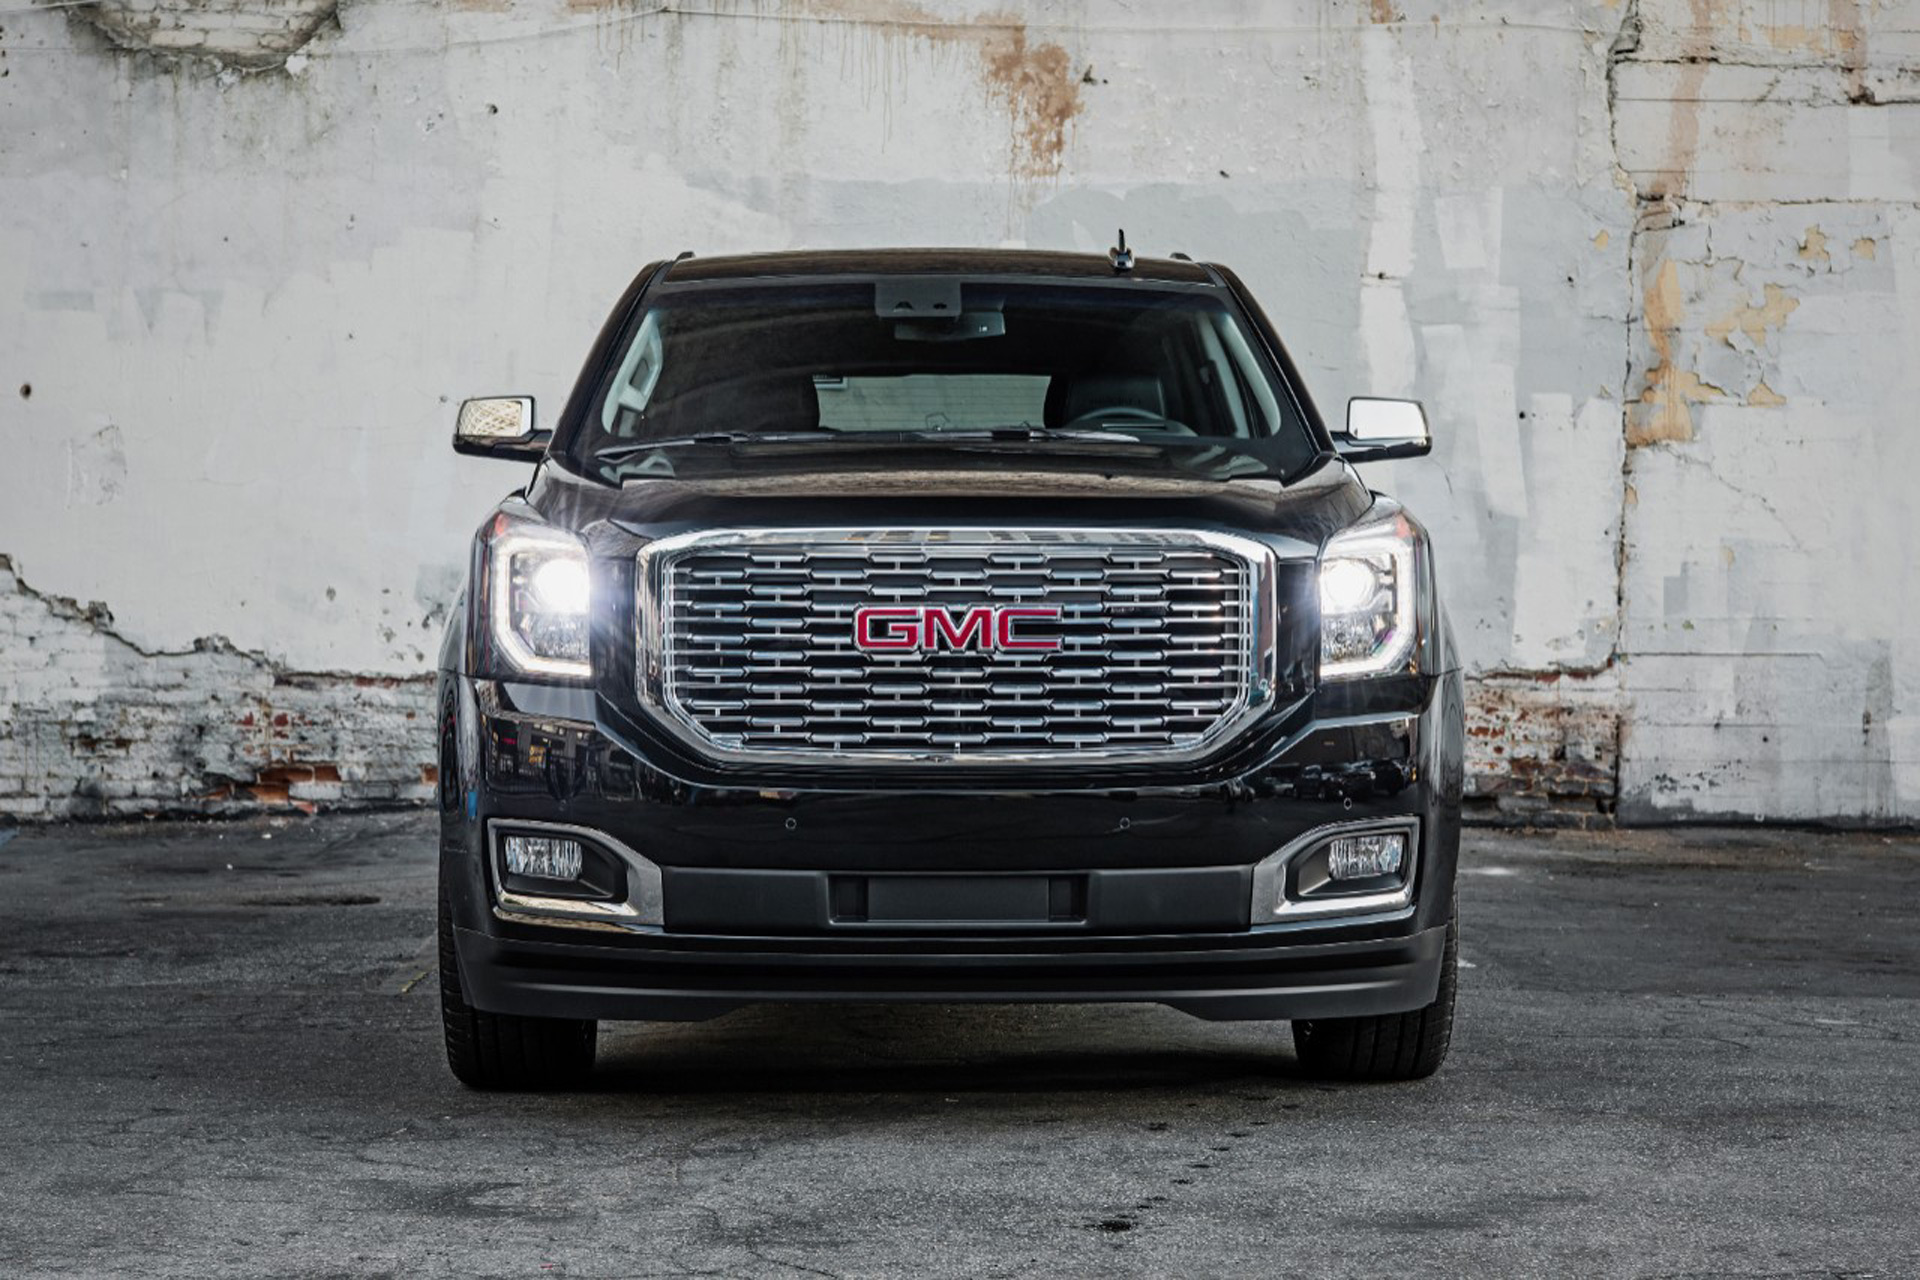 2018 Gmc Yukon Denali Spawns Ultimate Black Edition